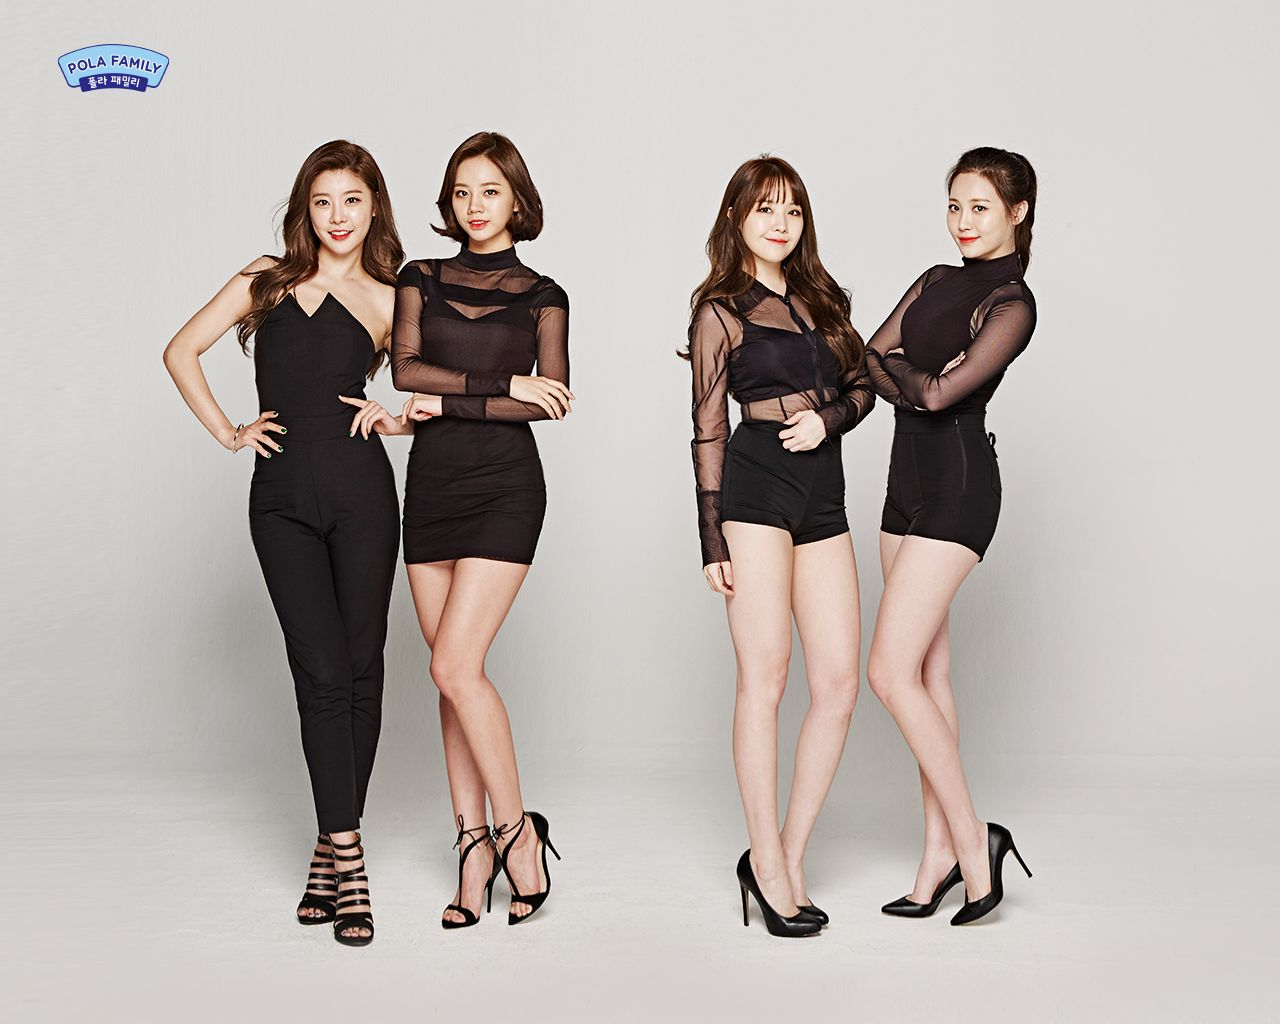 [PICS] 160319 Bullsone 'Pola Family' Photoshoot – Girl's Day |